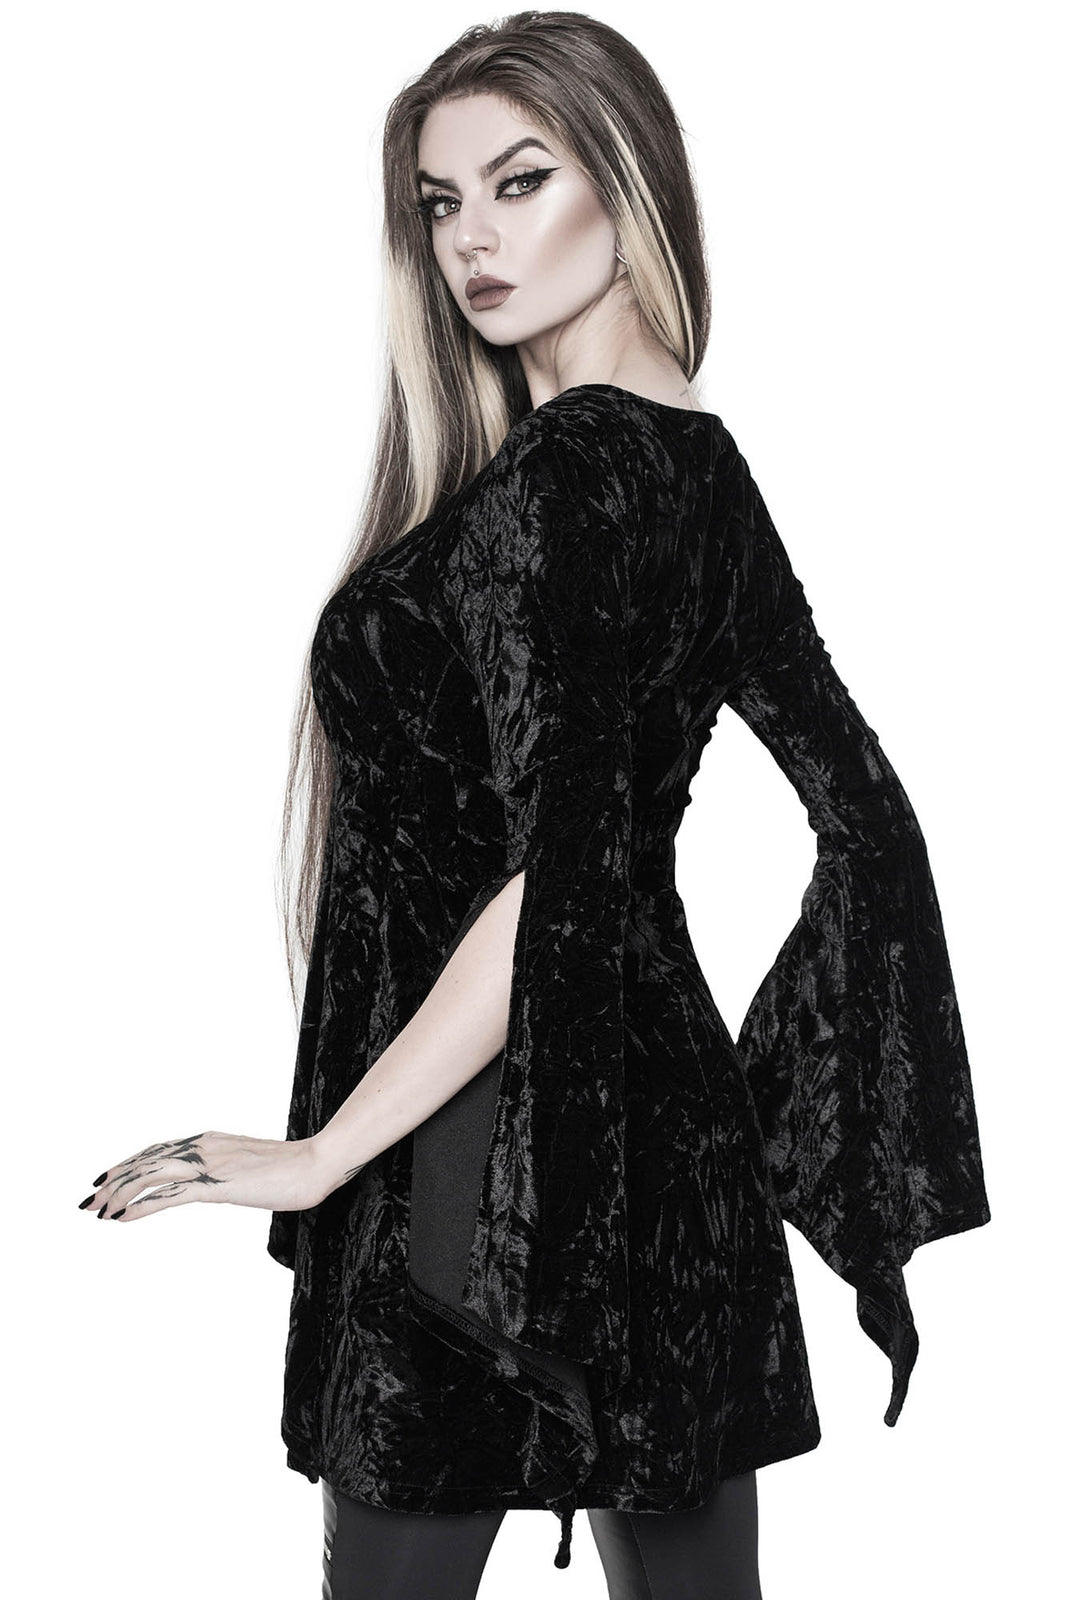 Piercing Long-Sleeve Tunic